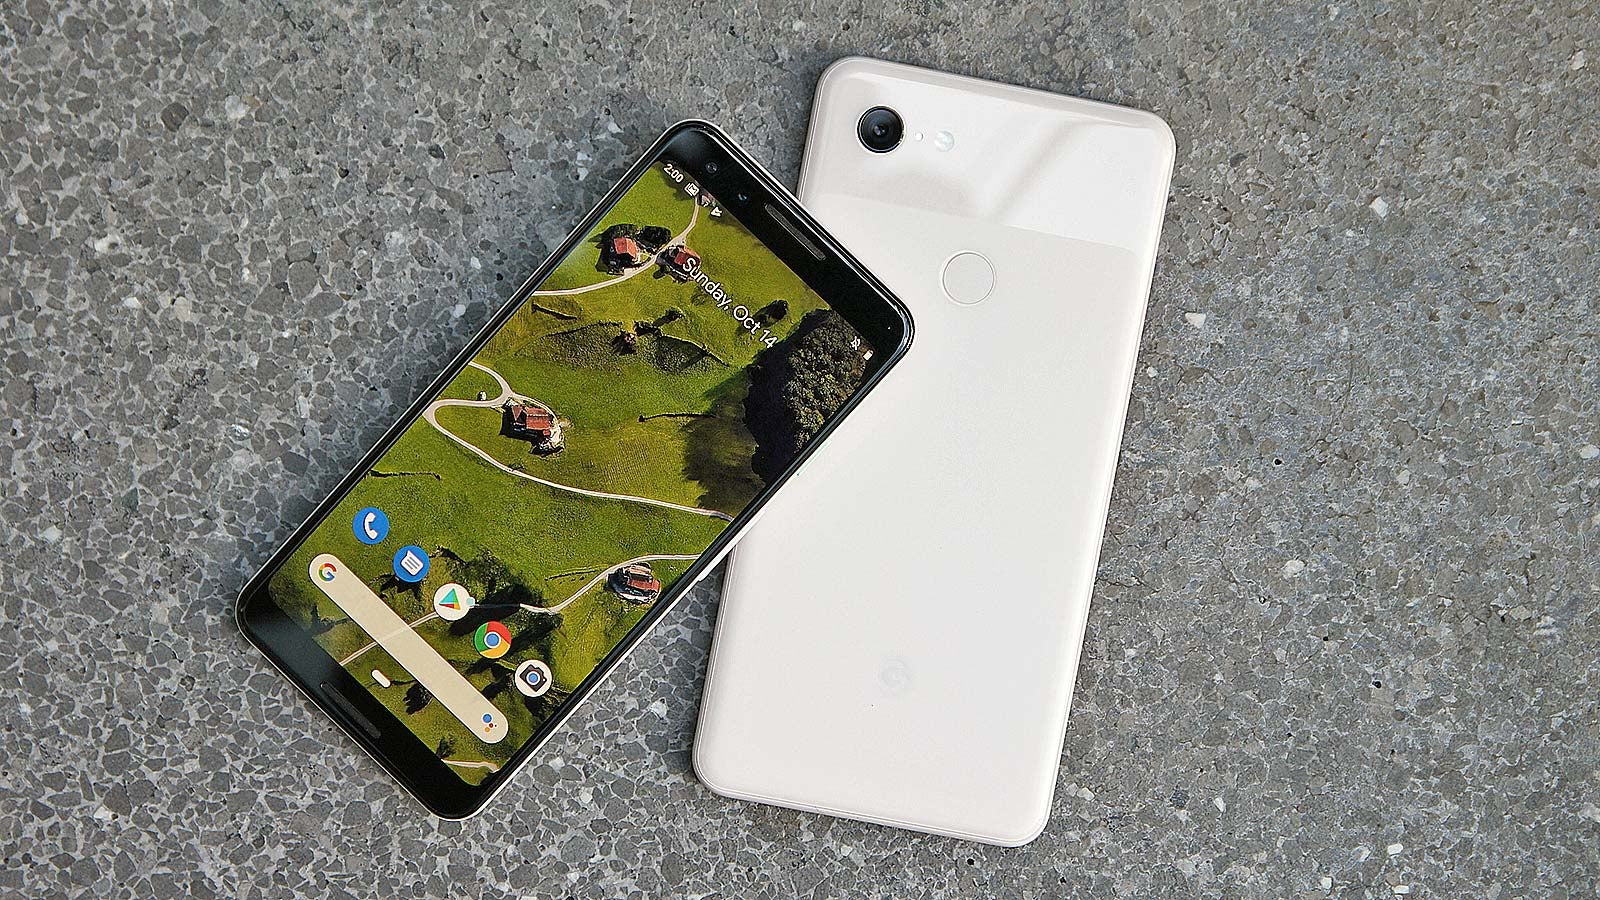 Google Promises A Fix For The Pixel 3's Biggest Issue 'in The Coming Weeks'